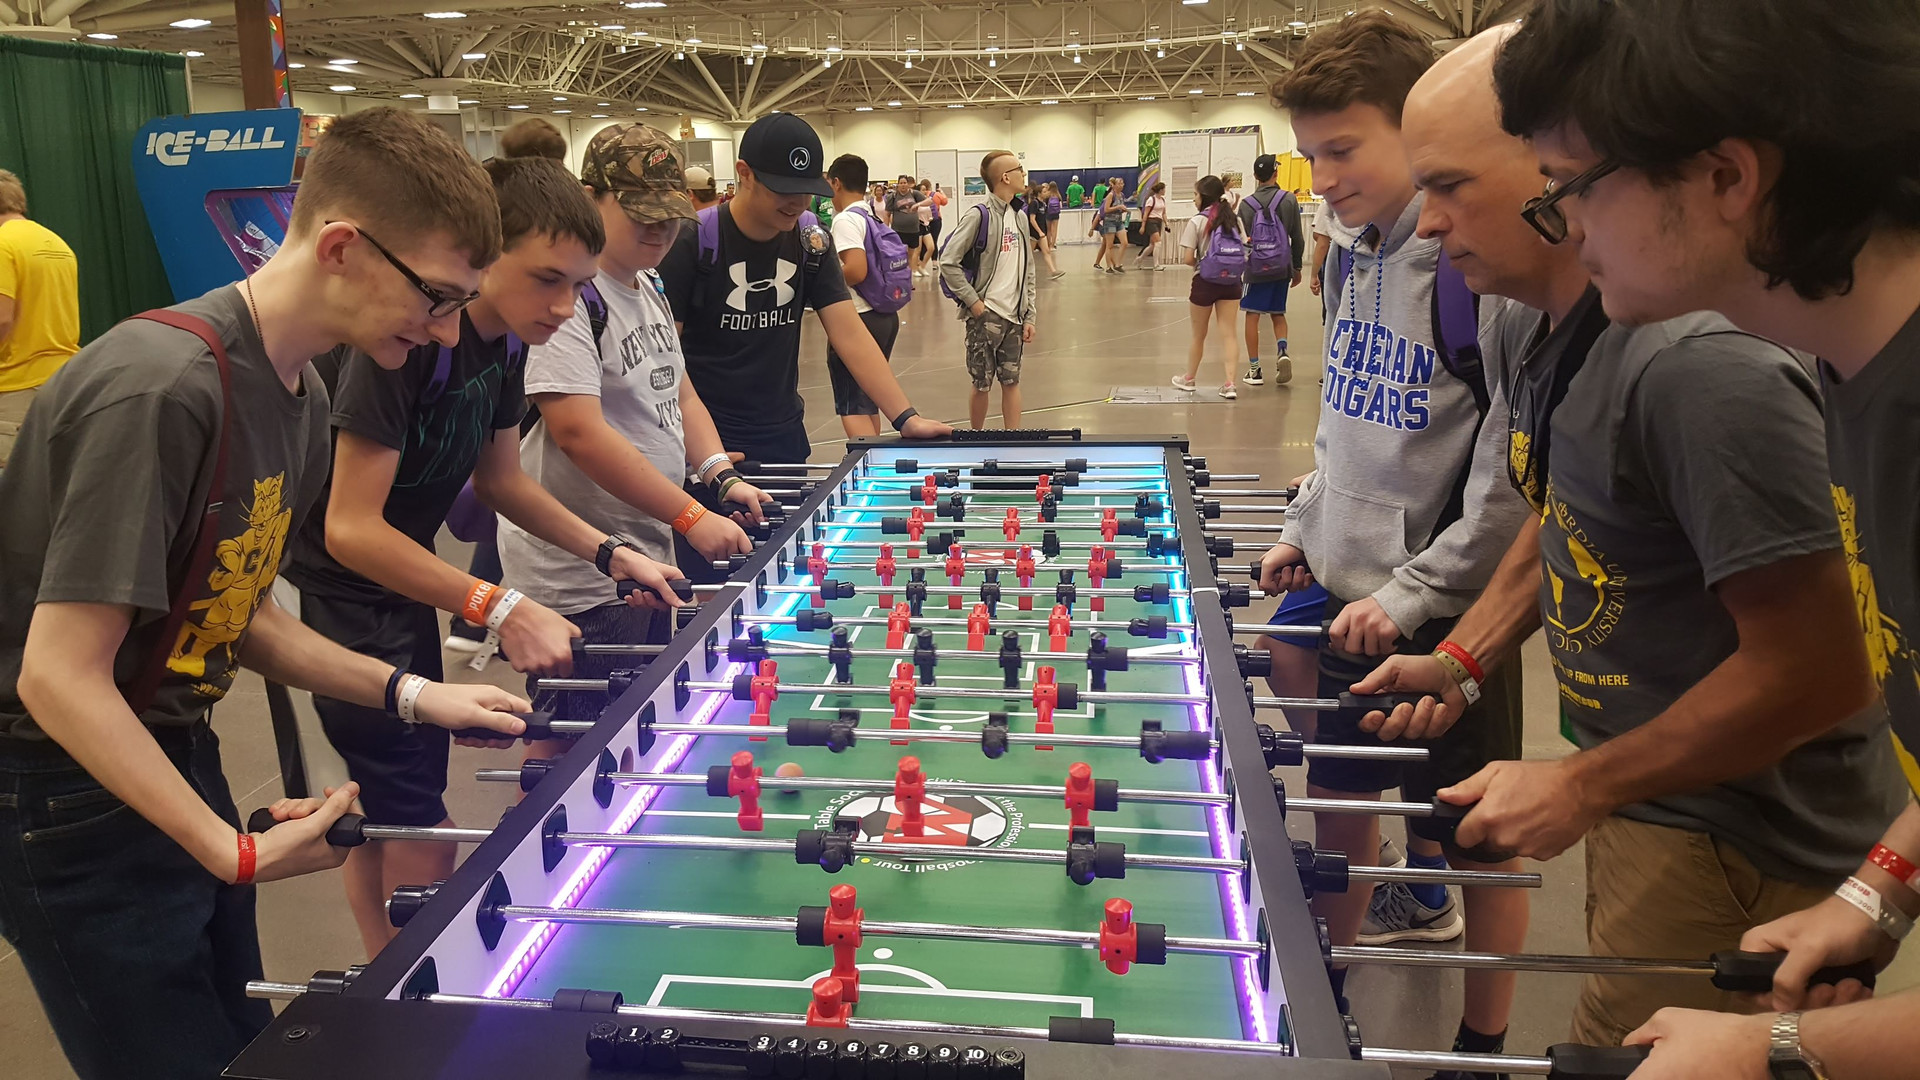 Youth playing foosball